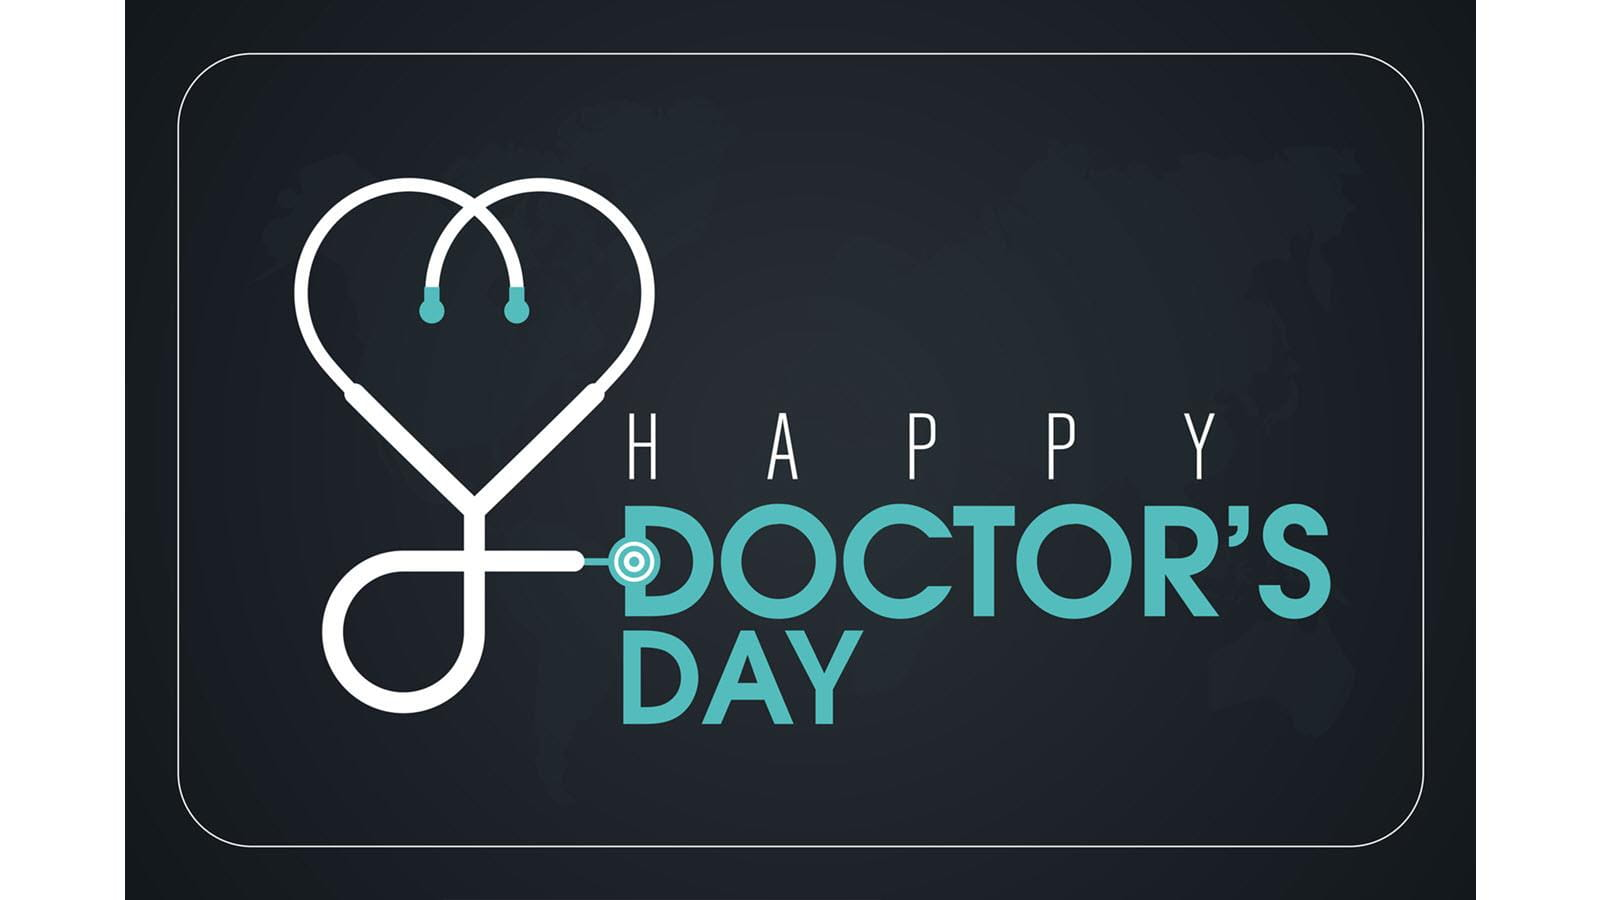 Happy Doctor's Day message next to a heart-shaped stethoscope